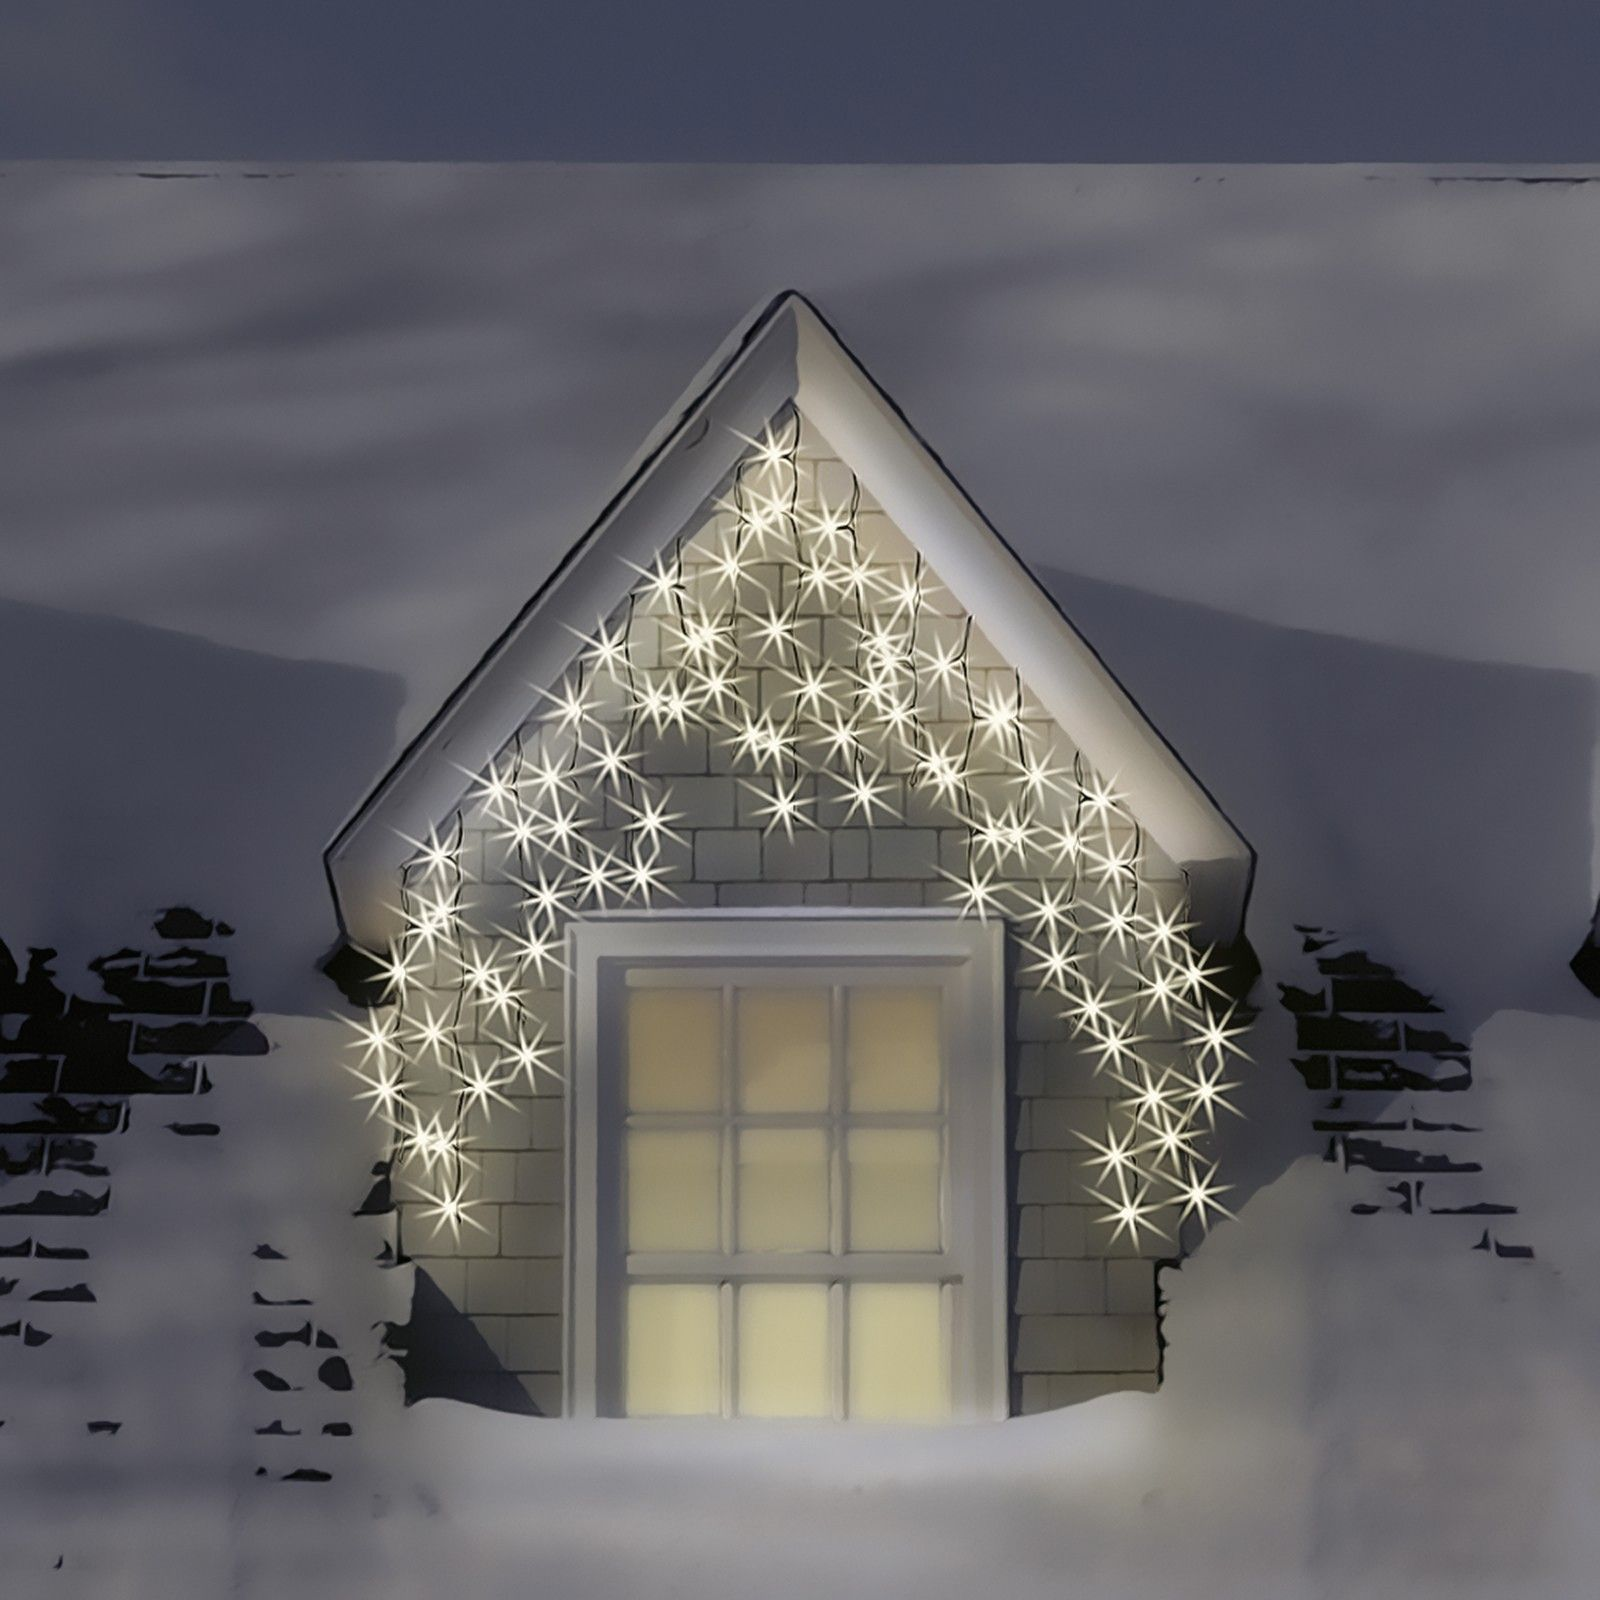 Connectable Outdoor Christmas Lights: 17 Best images about LED Icicle Lights Warm White on Pinterest | Cable,  Warm and Christmas icicle lights,Lighting